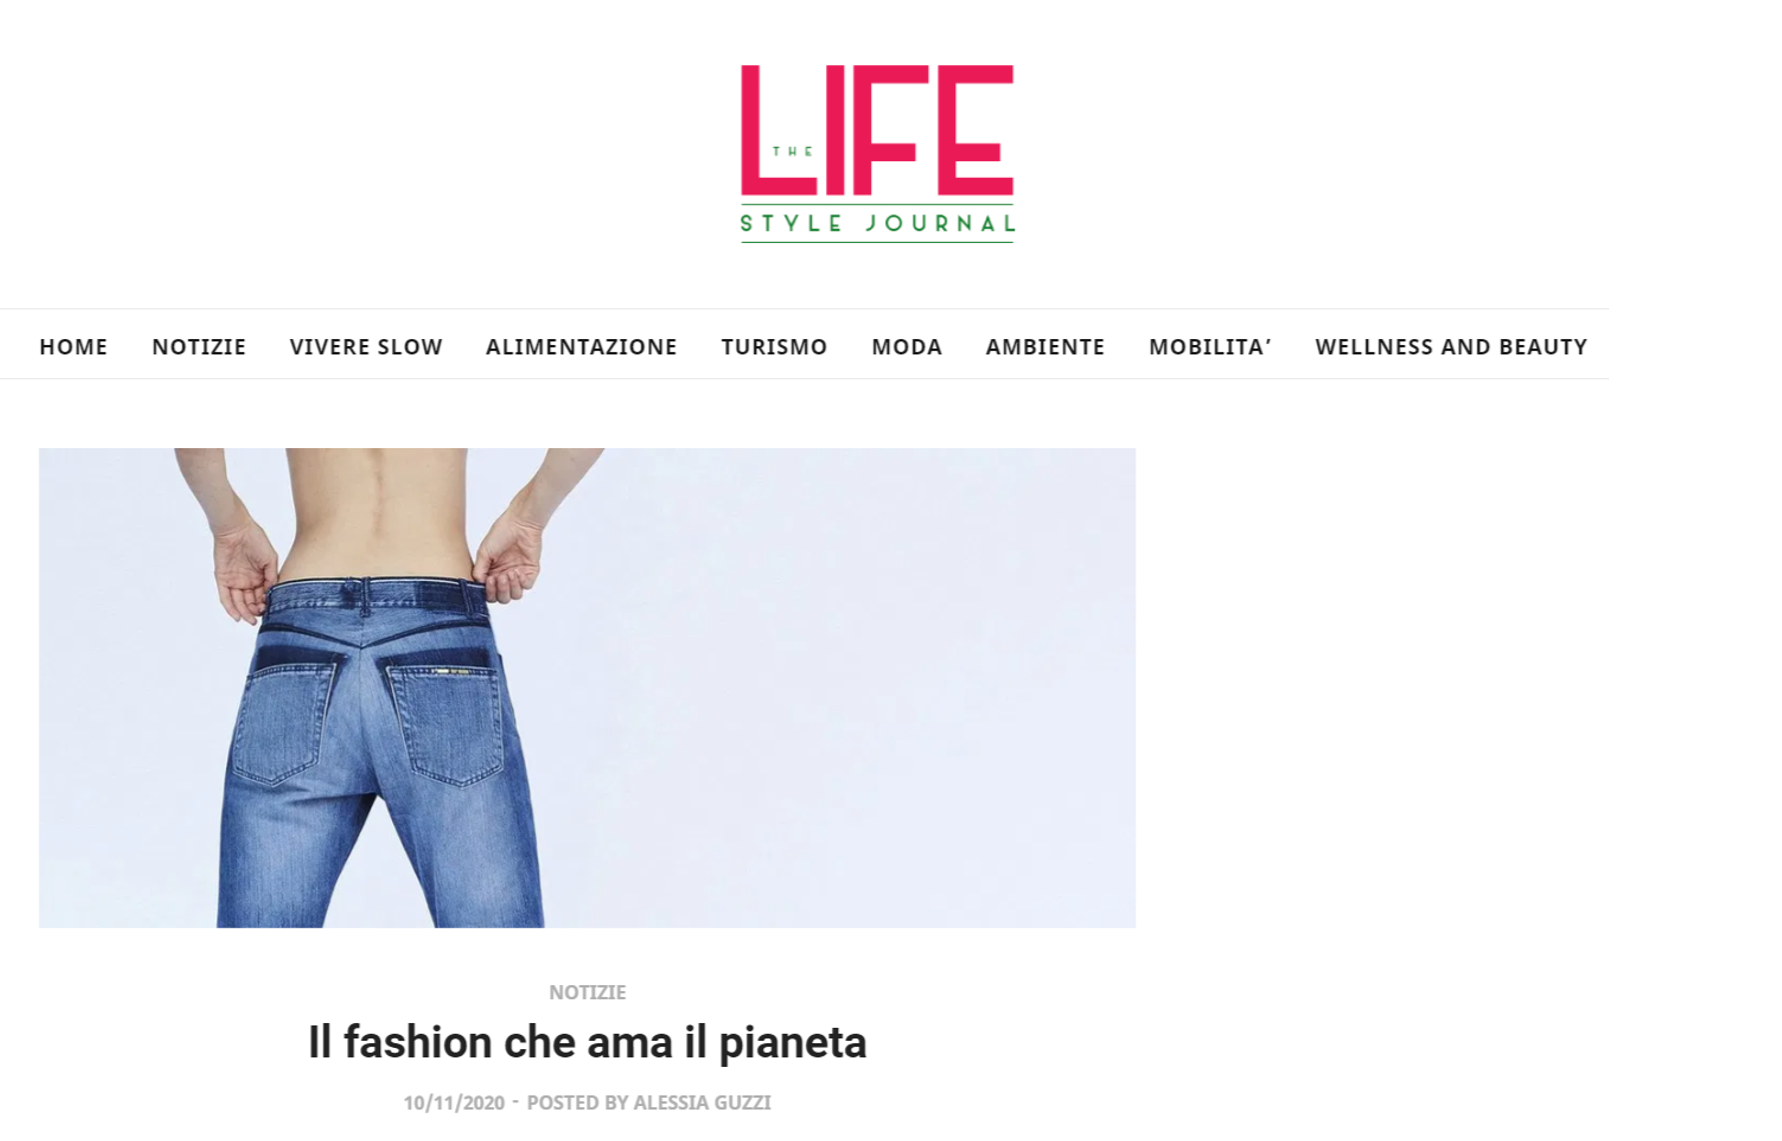 The Lifestyle Journal - Il fashion che ama il pianeta